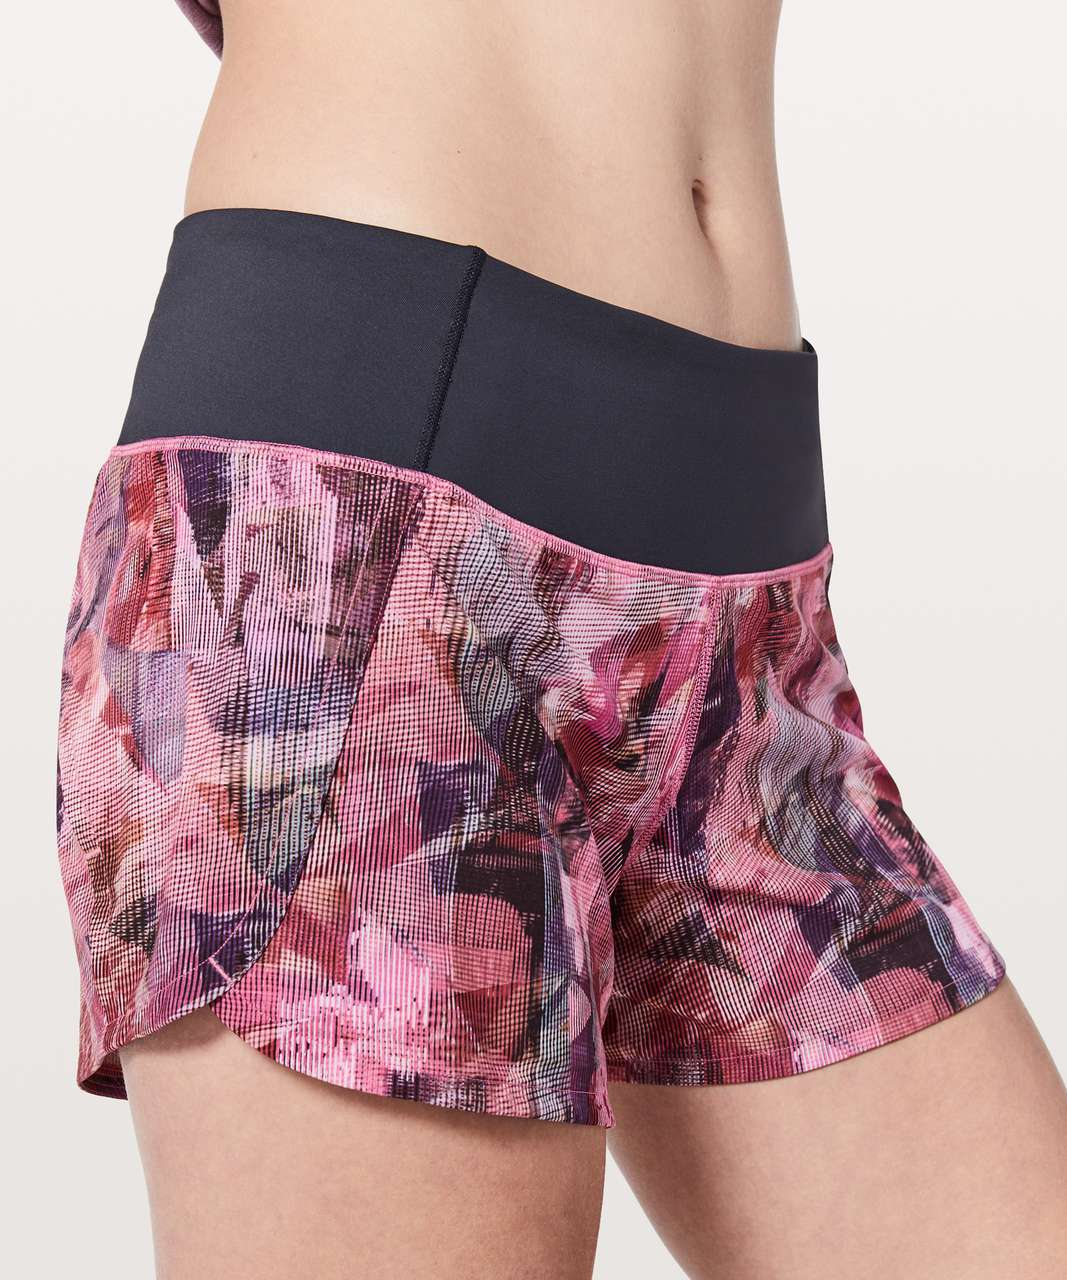 "Lululemon Run Times Short II *4"" - Sun Dazed Multi Pink / Super Dark"